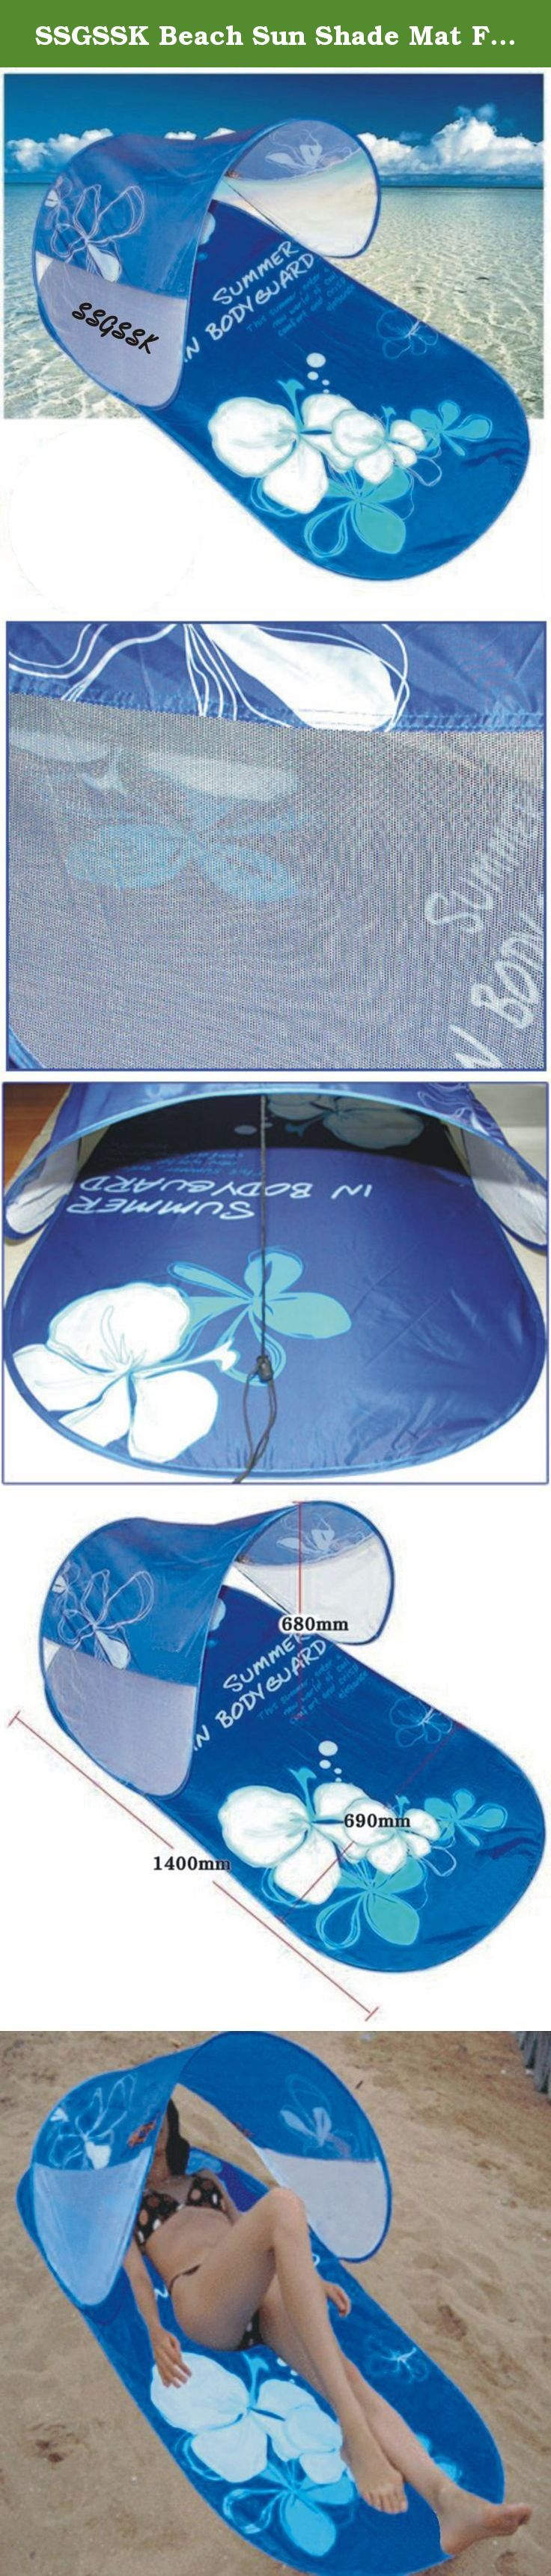 SSGSSK Beach Sun Shade Mat Foldable 1Person Pop Up Tent Camping Outdoor Sports. One-touch Portable Tent Excellent wind flow. The mesh on the side of the tent gives a cool breeze. Band is attached to the side of the tent. It is possible to adjust the angle of the popup tent. Protect your skin with ultraviolet light! Easy Fold-Up instructions on back of insert sheet on outside of bag. Camping, Fishing, Hiking, Swimming the essential items. One-touch Portable Sun Shade Beach Tent Size: 1400mm…